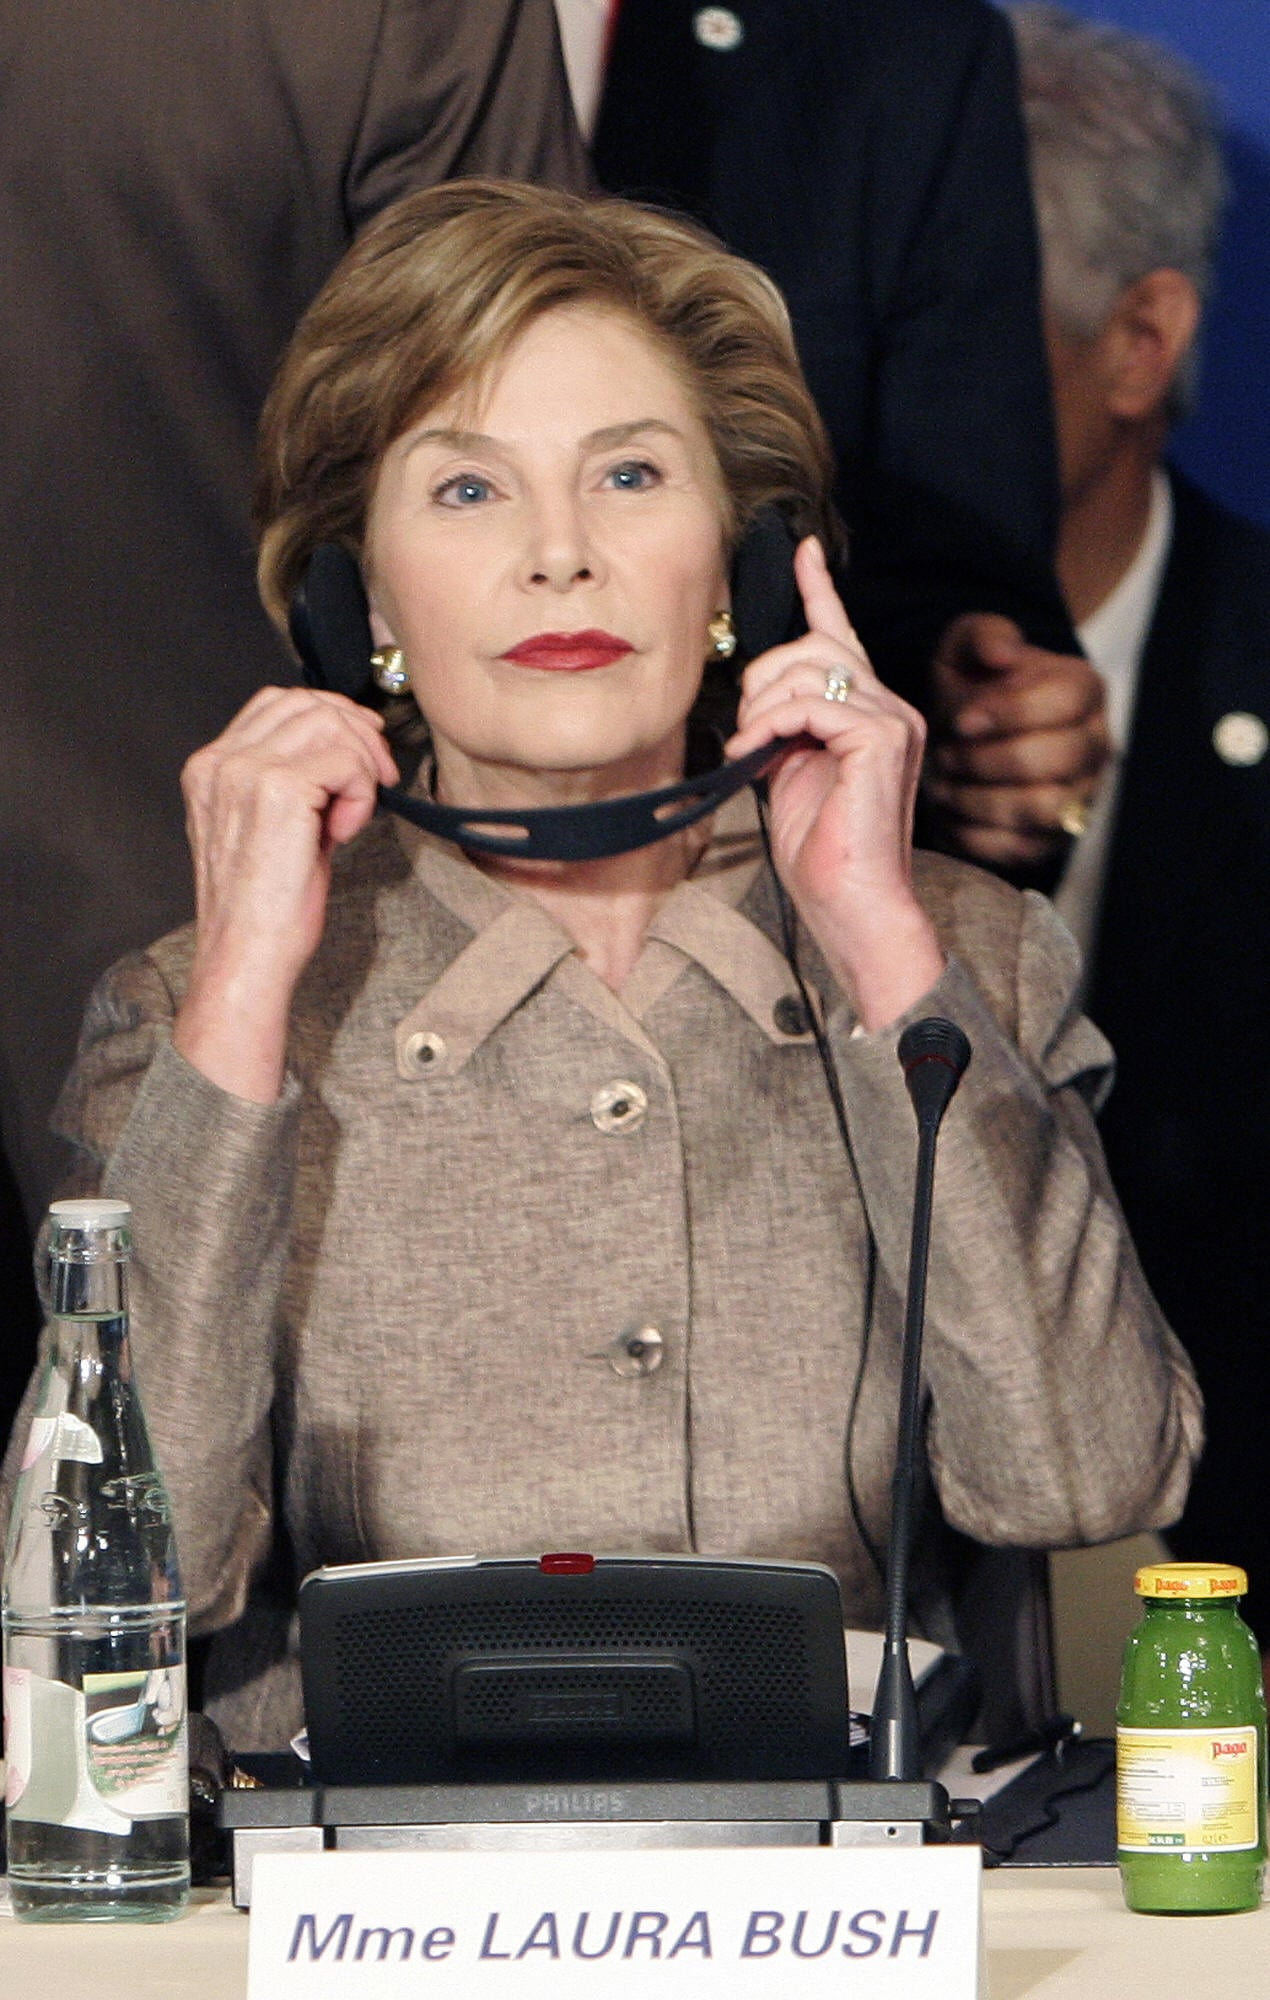 Laura Bush announced the US pledge of $10.2 billion.